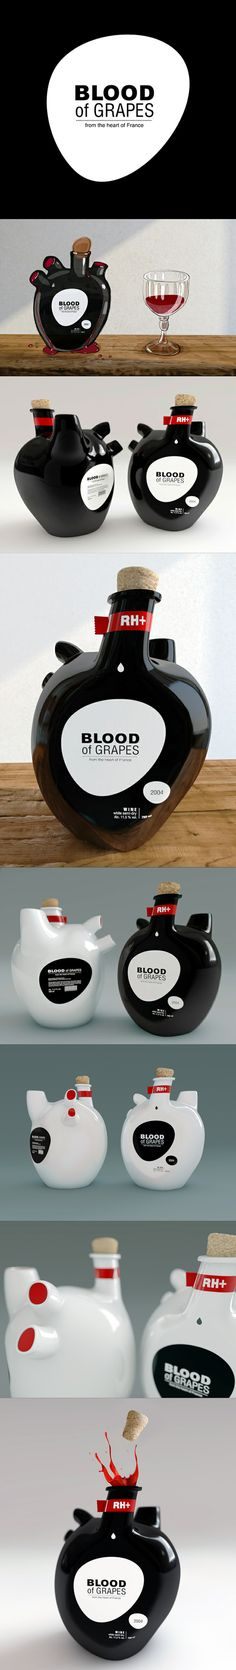 unique packaging | blood of grapes by constantin bolimond